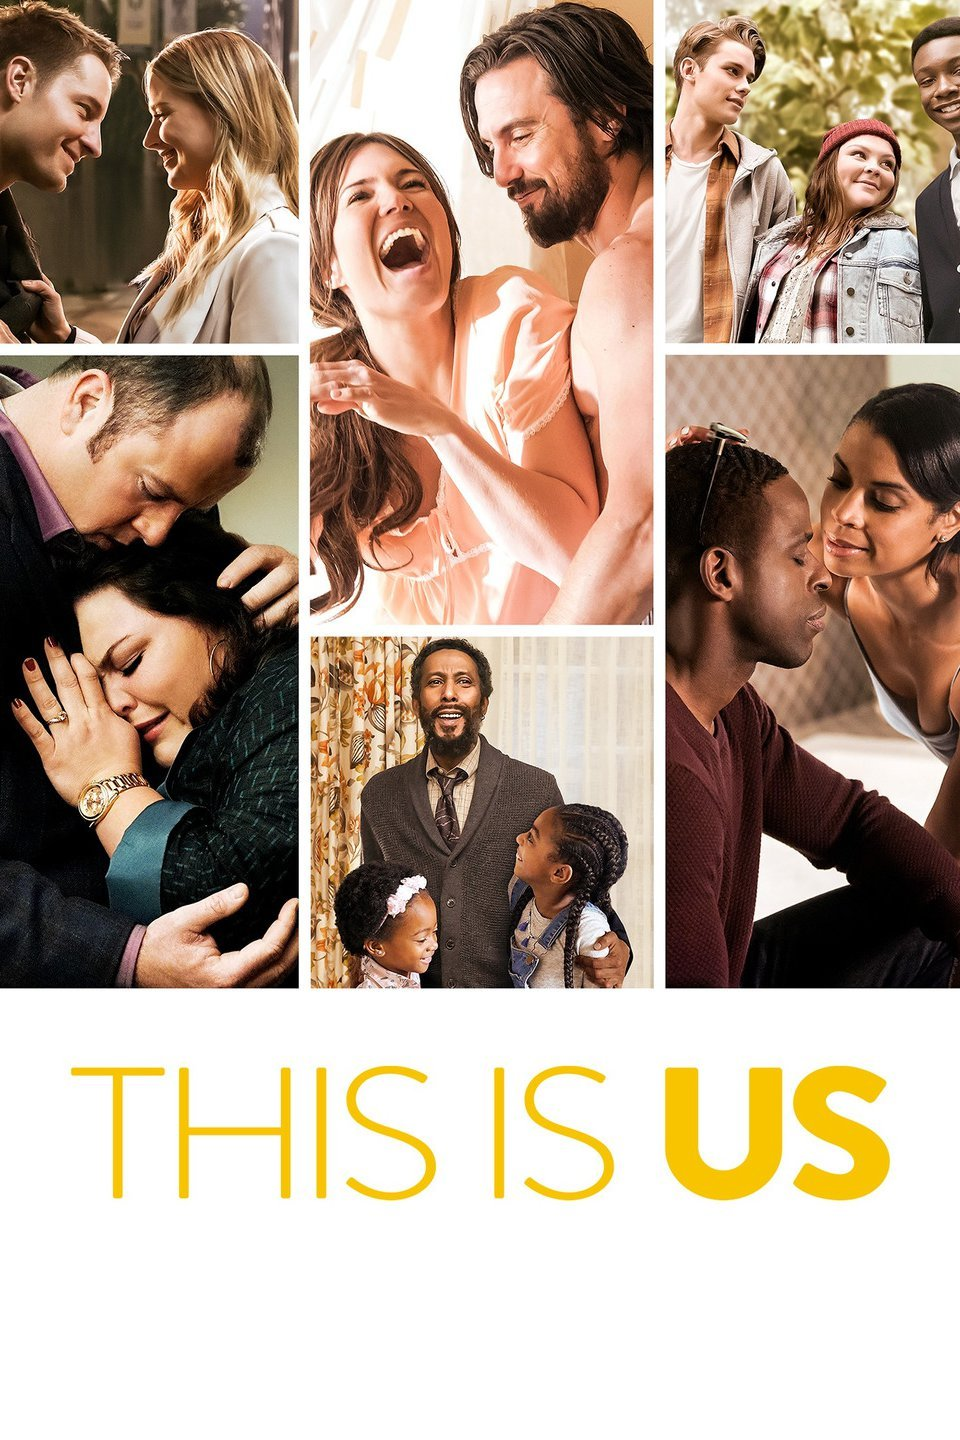 This Is Us Season 2 Episode 16+17 Download HDTV 480p & 720p